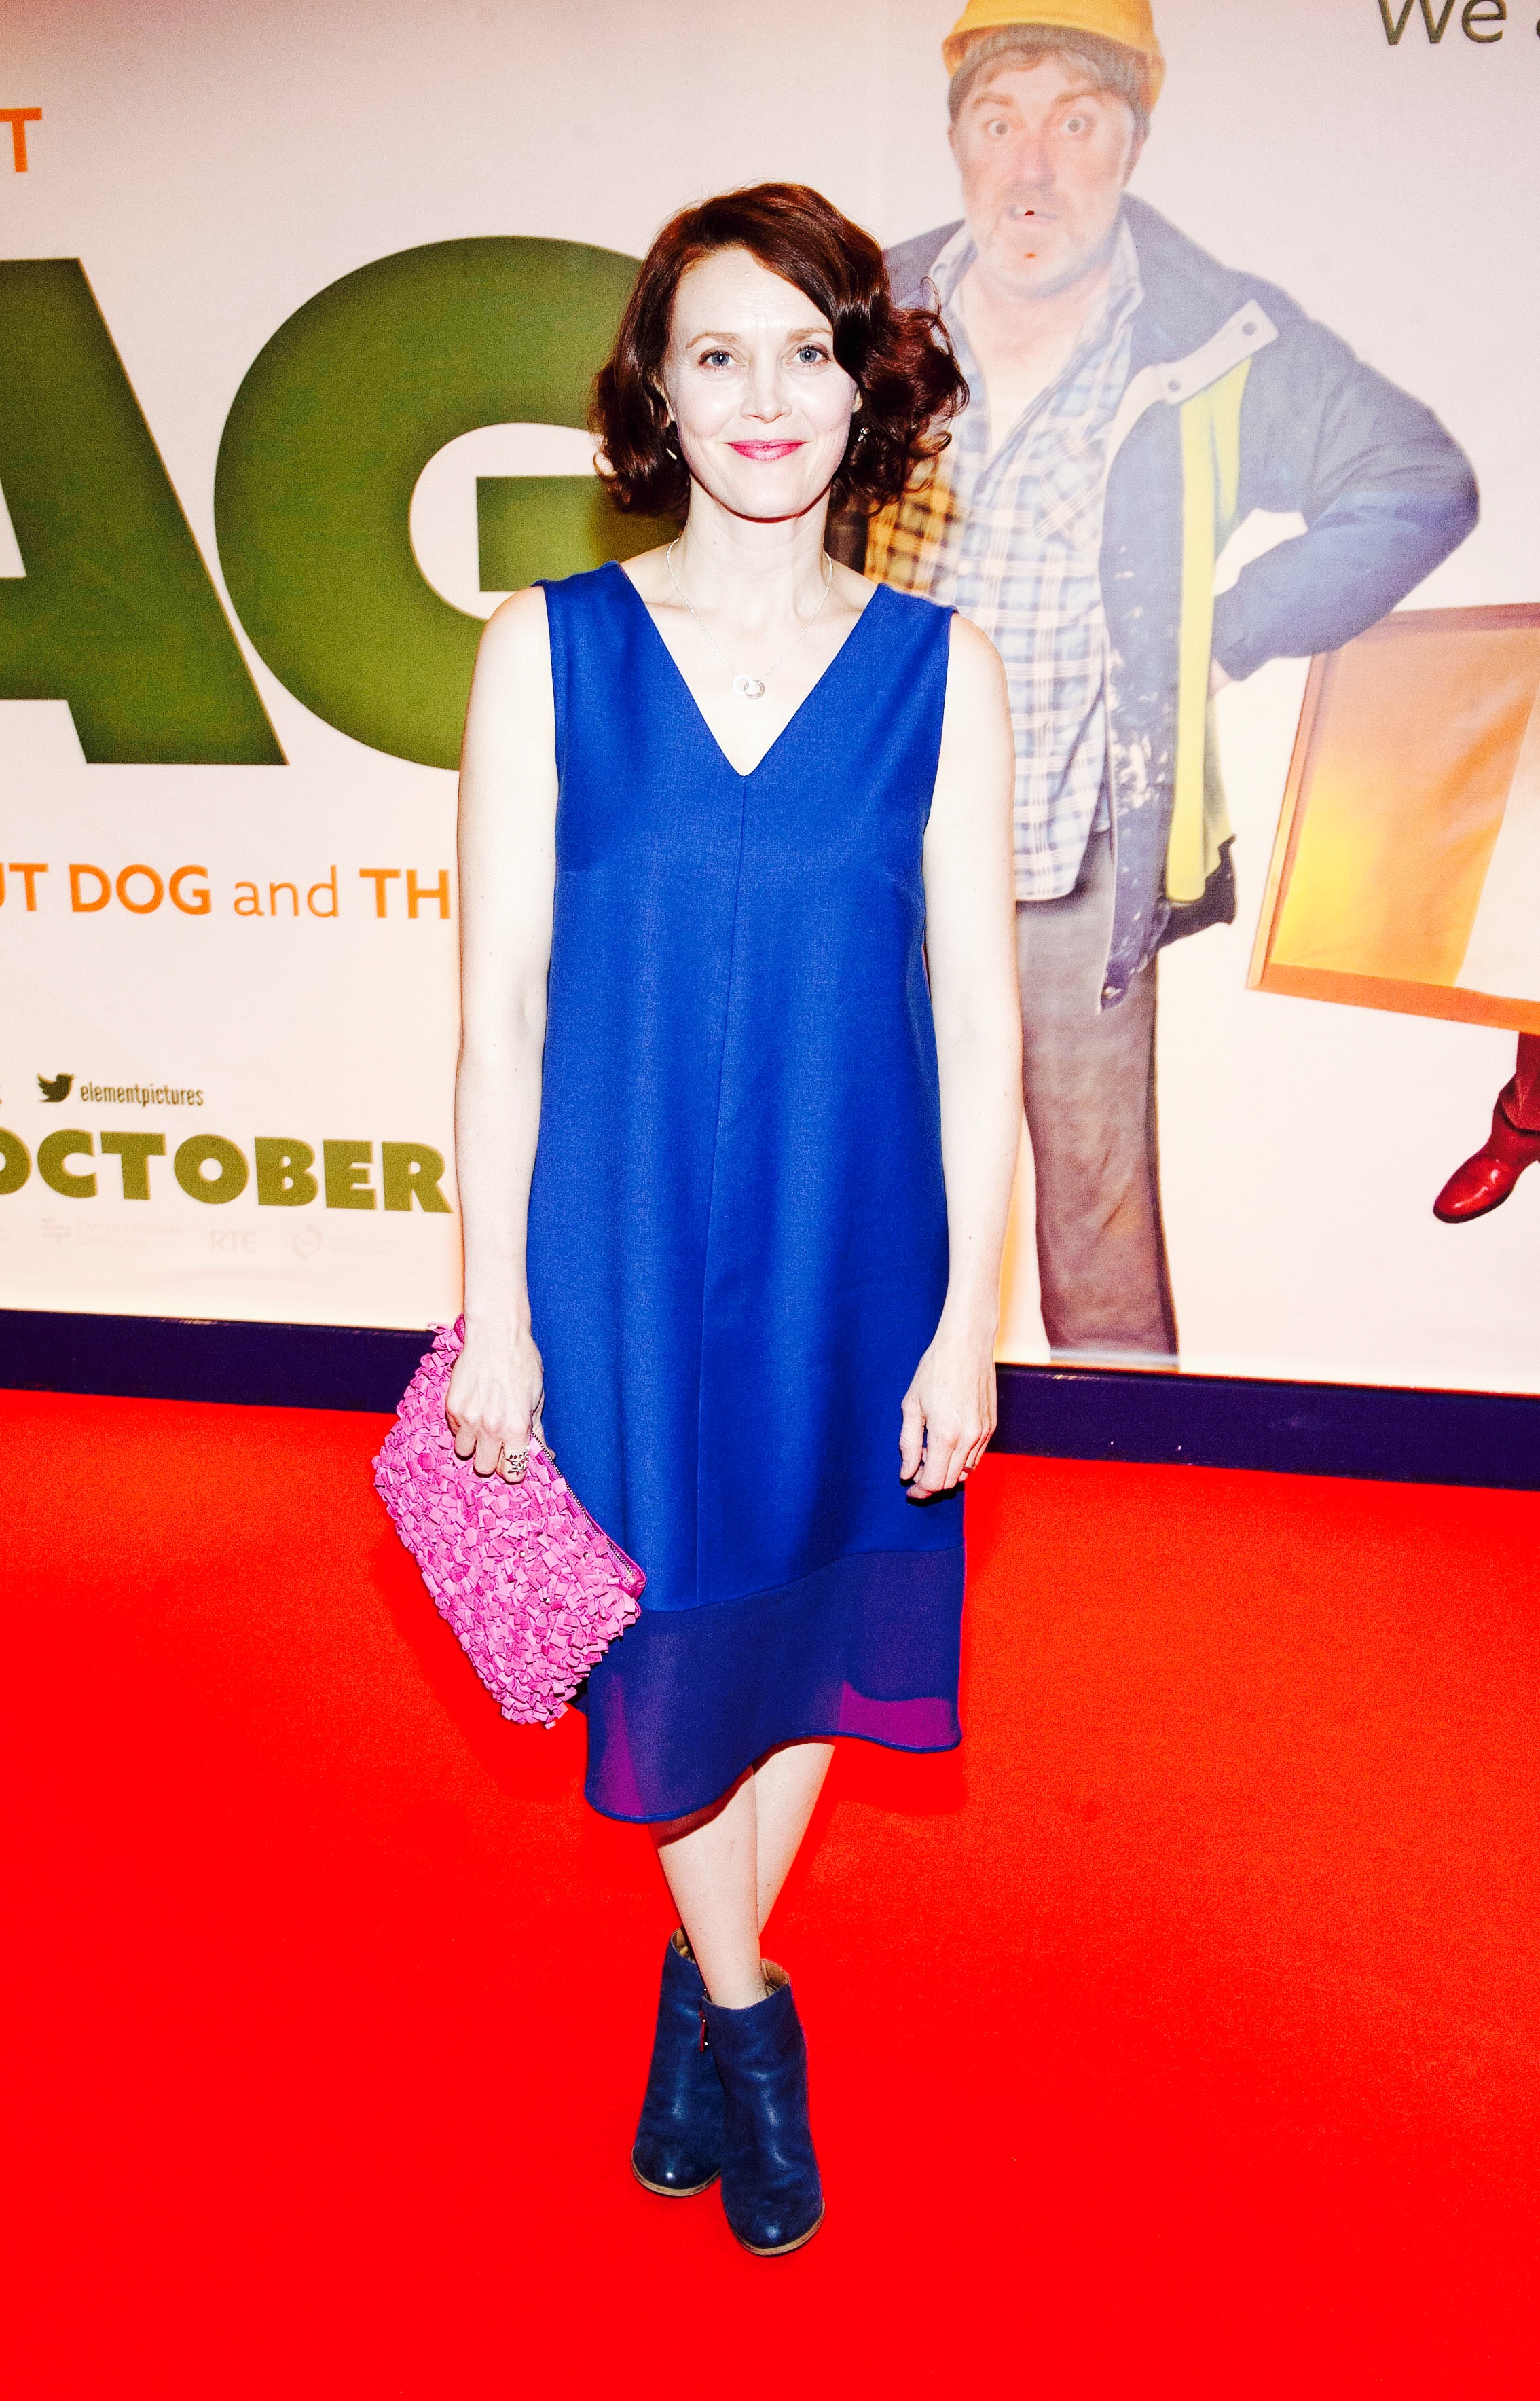 Simone Kirby at the premier of THE FLAG at cineworld